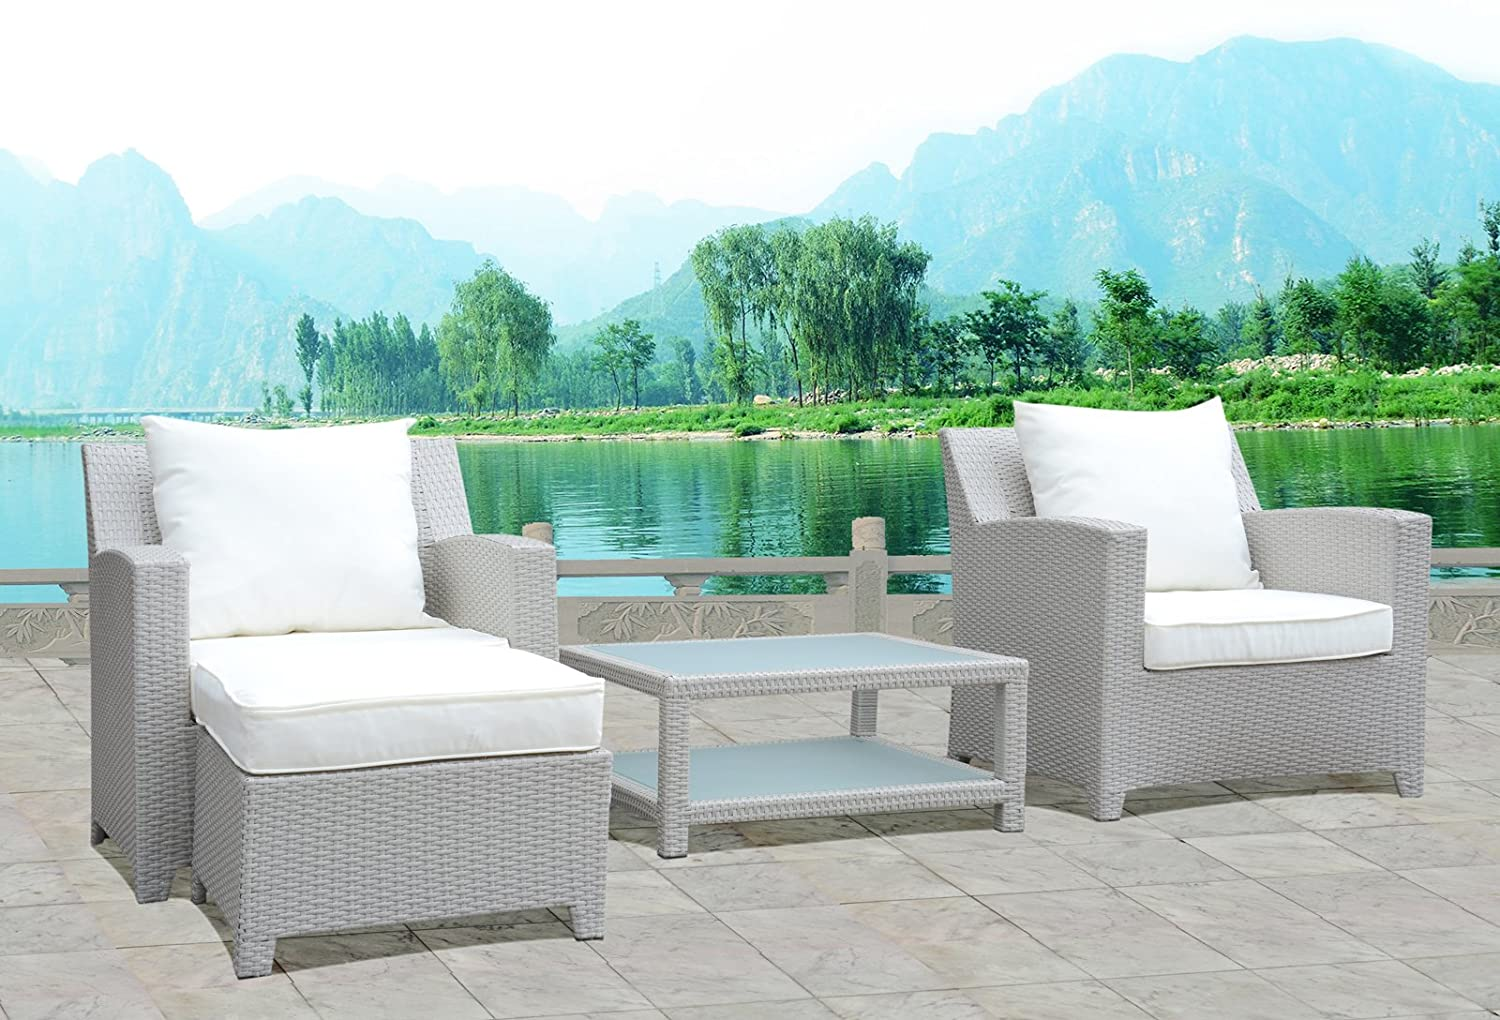 design gartenm bel lounge sitzgruppe polyrattan 2 x sessel. Black Bedroom Furniture Sets. Home Design Ideas